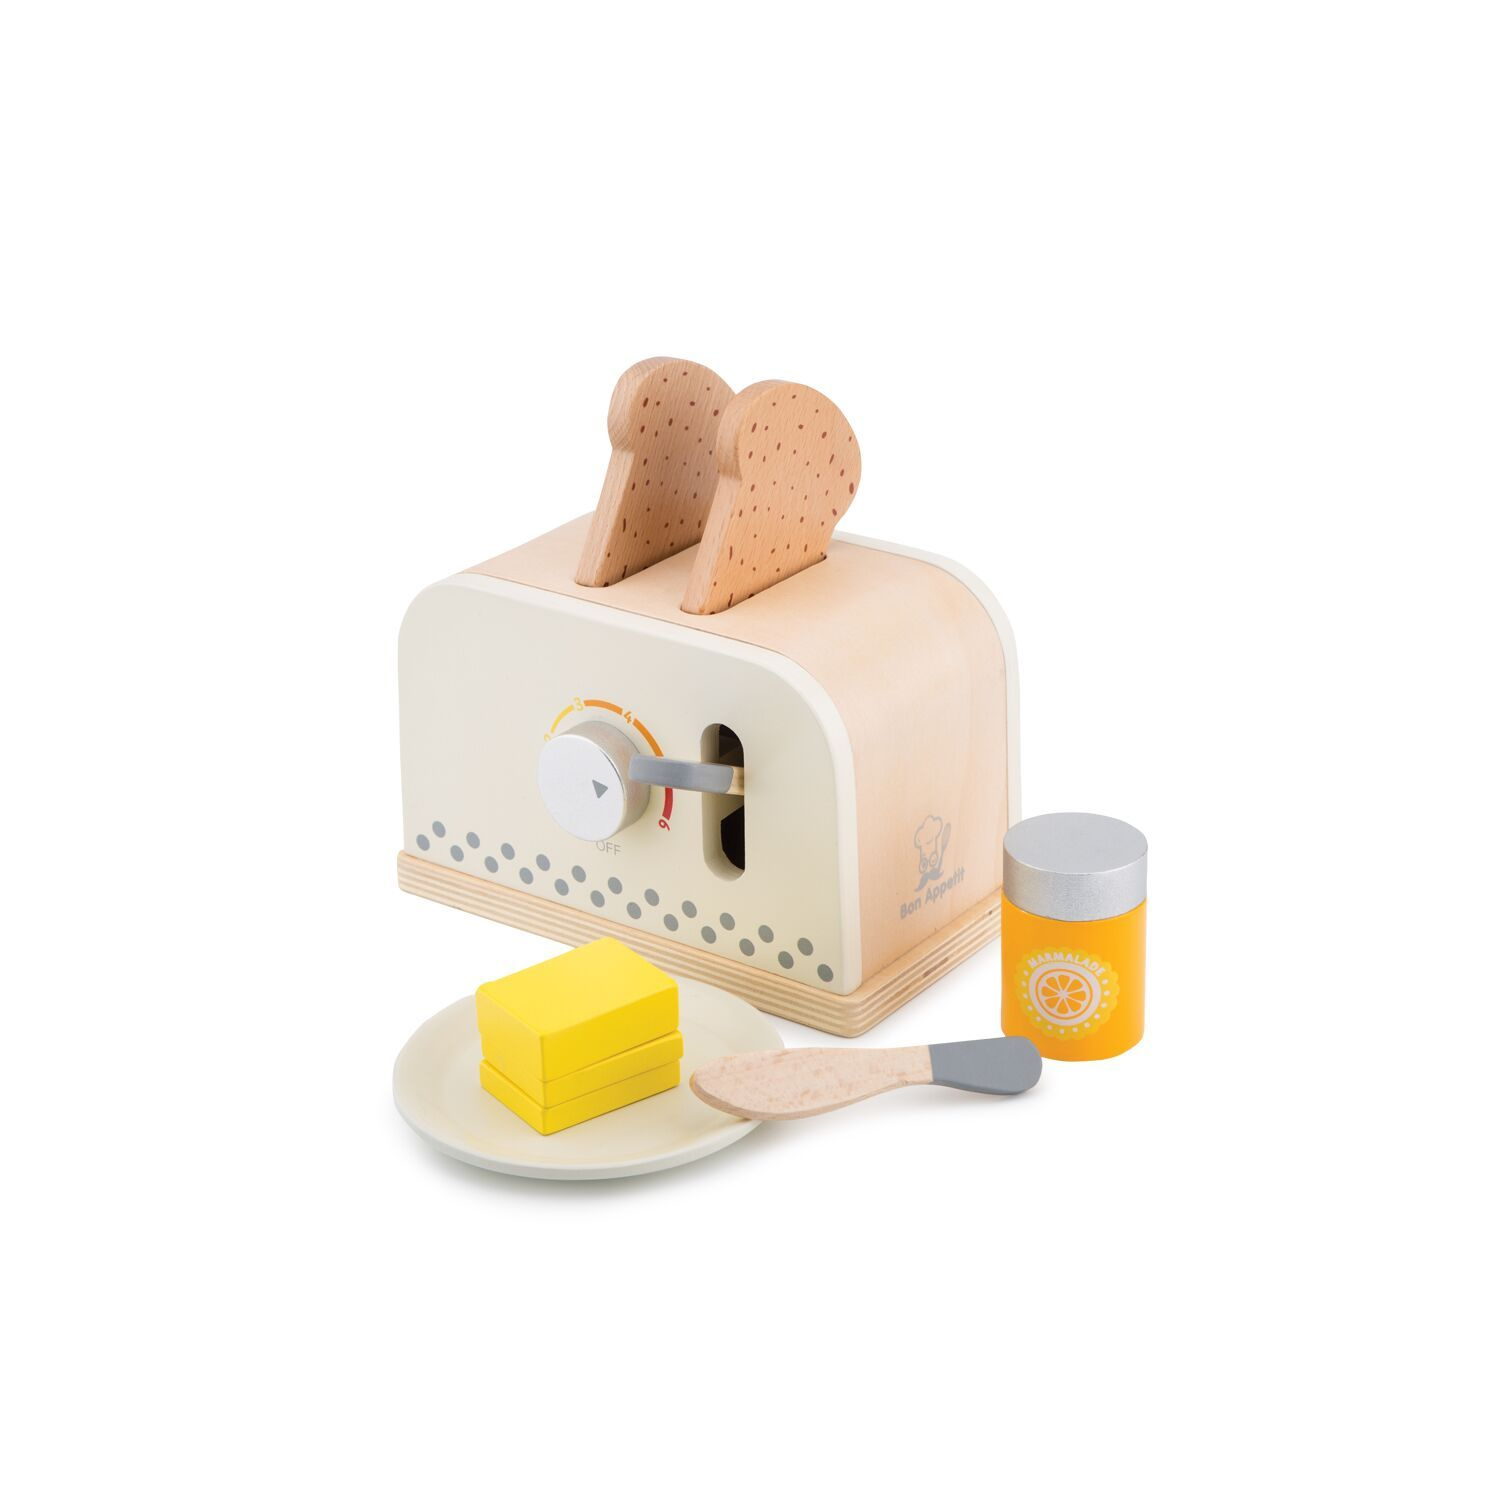 New Classic Toys Pop Up Toaster New Classic Toys Pretend Play at Little Earth Nest Eco Shop